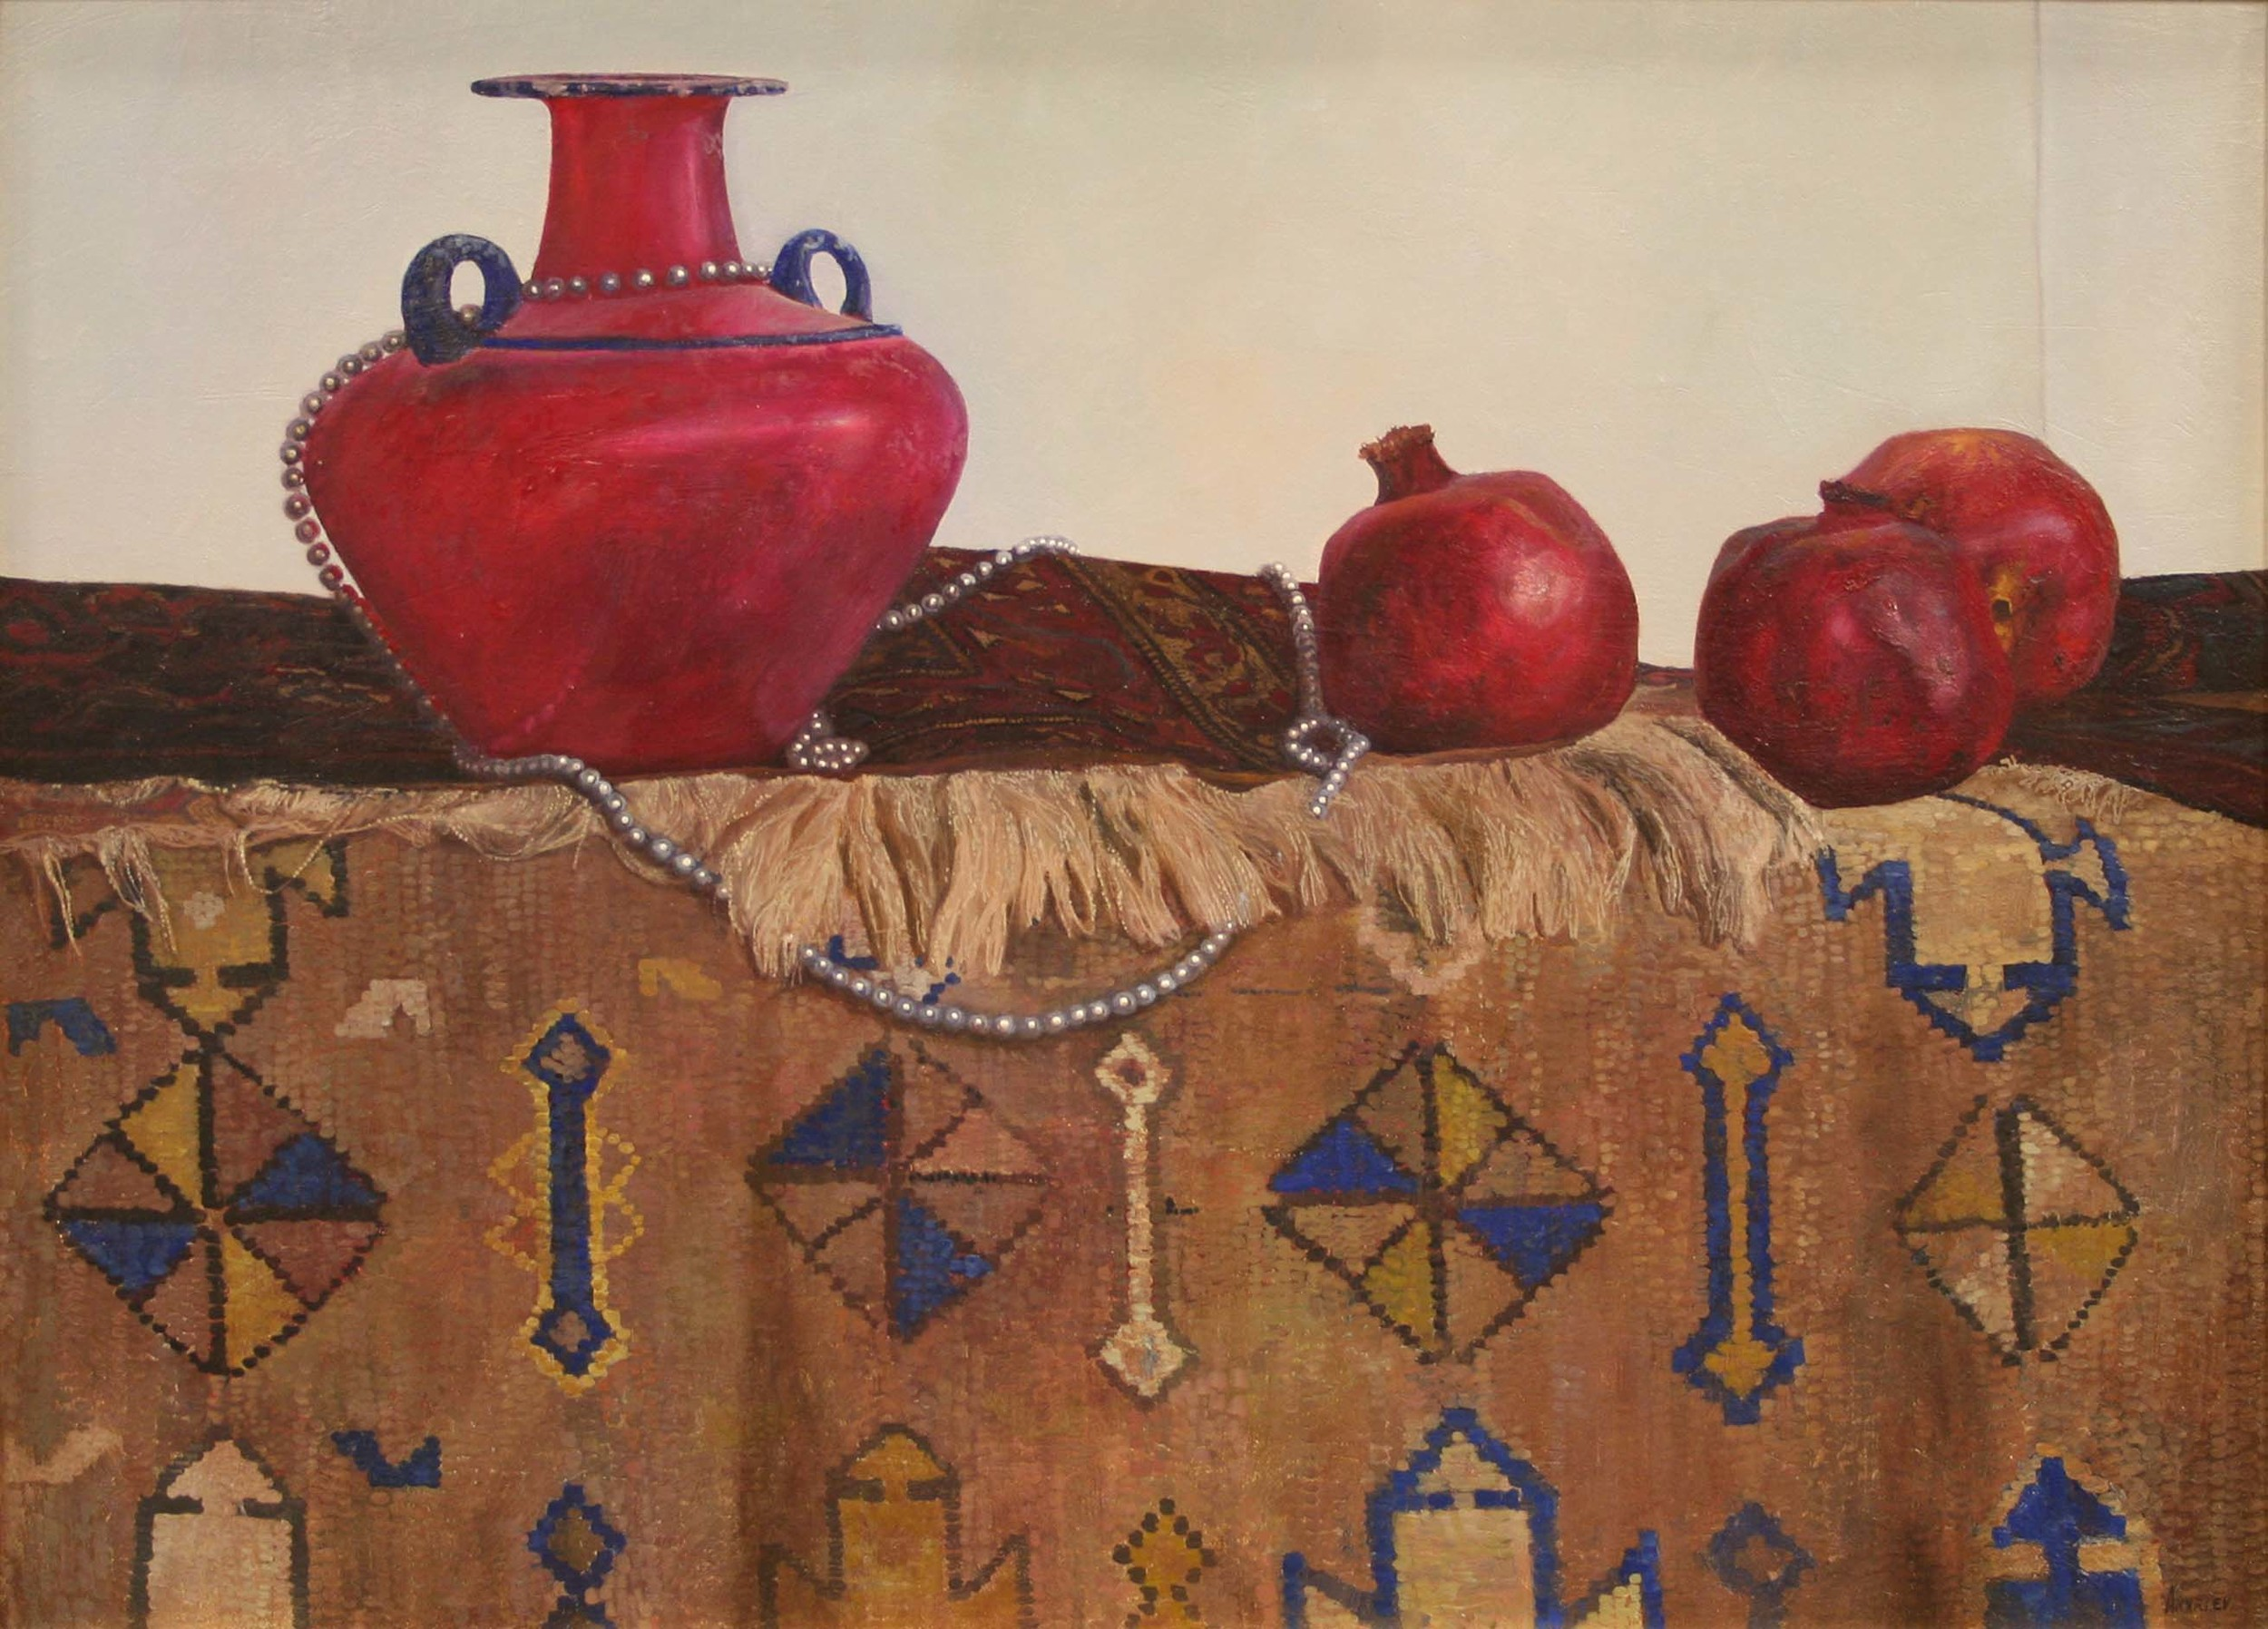 Two rugs with a red pot and pomegranates on it.